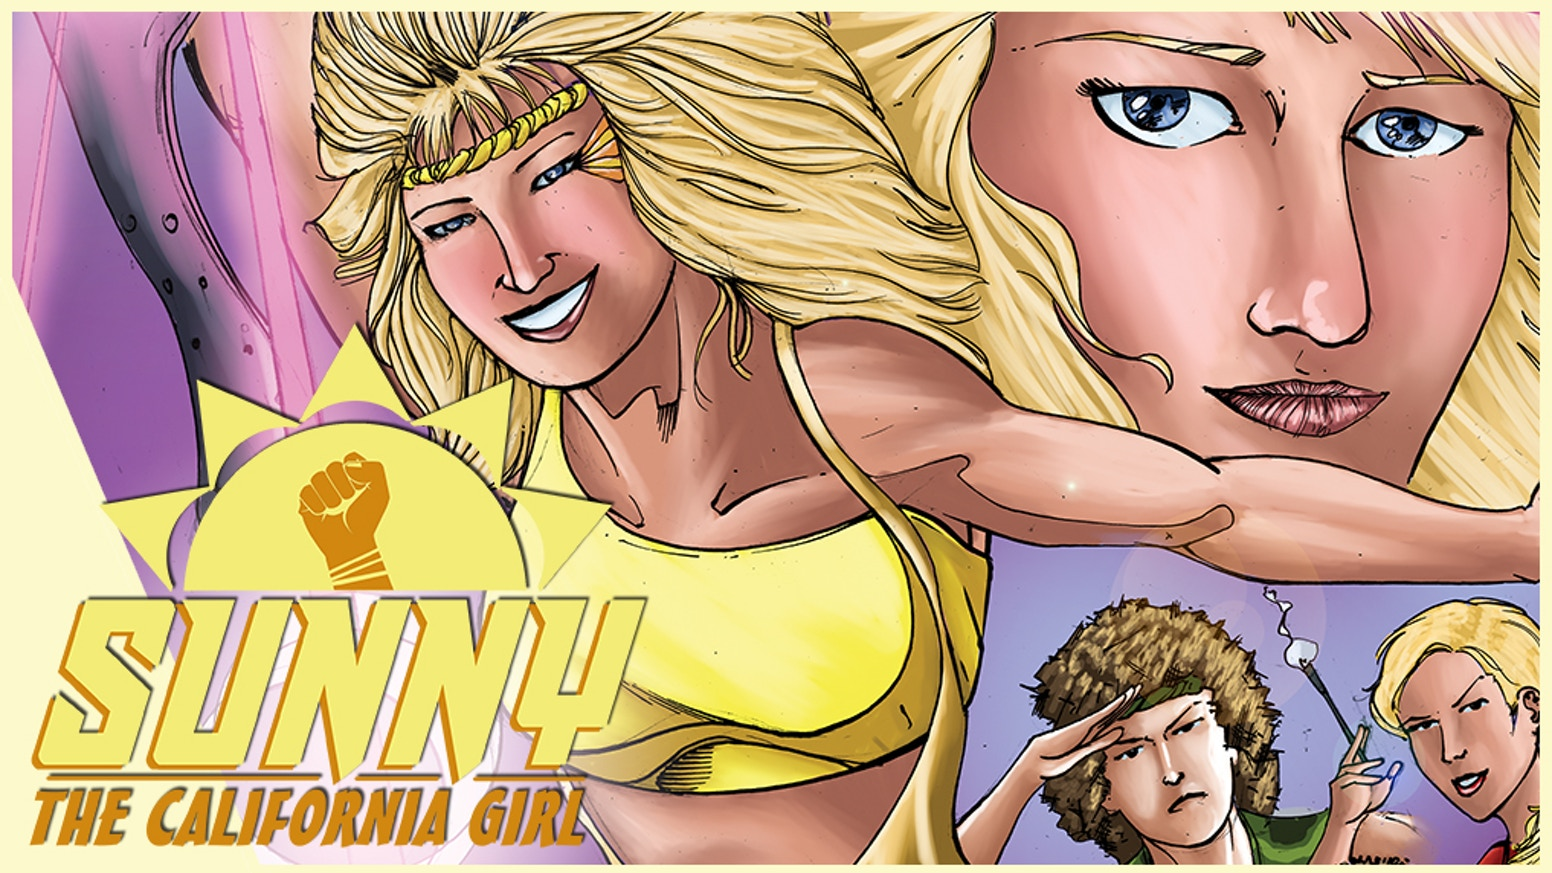 Sunny the California Girl: a GLOW Wrestling Story from the 1980's